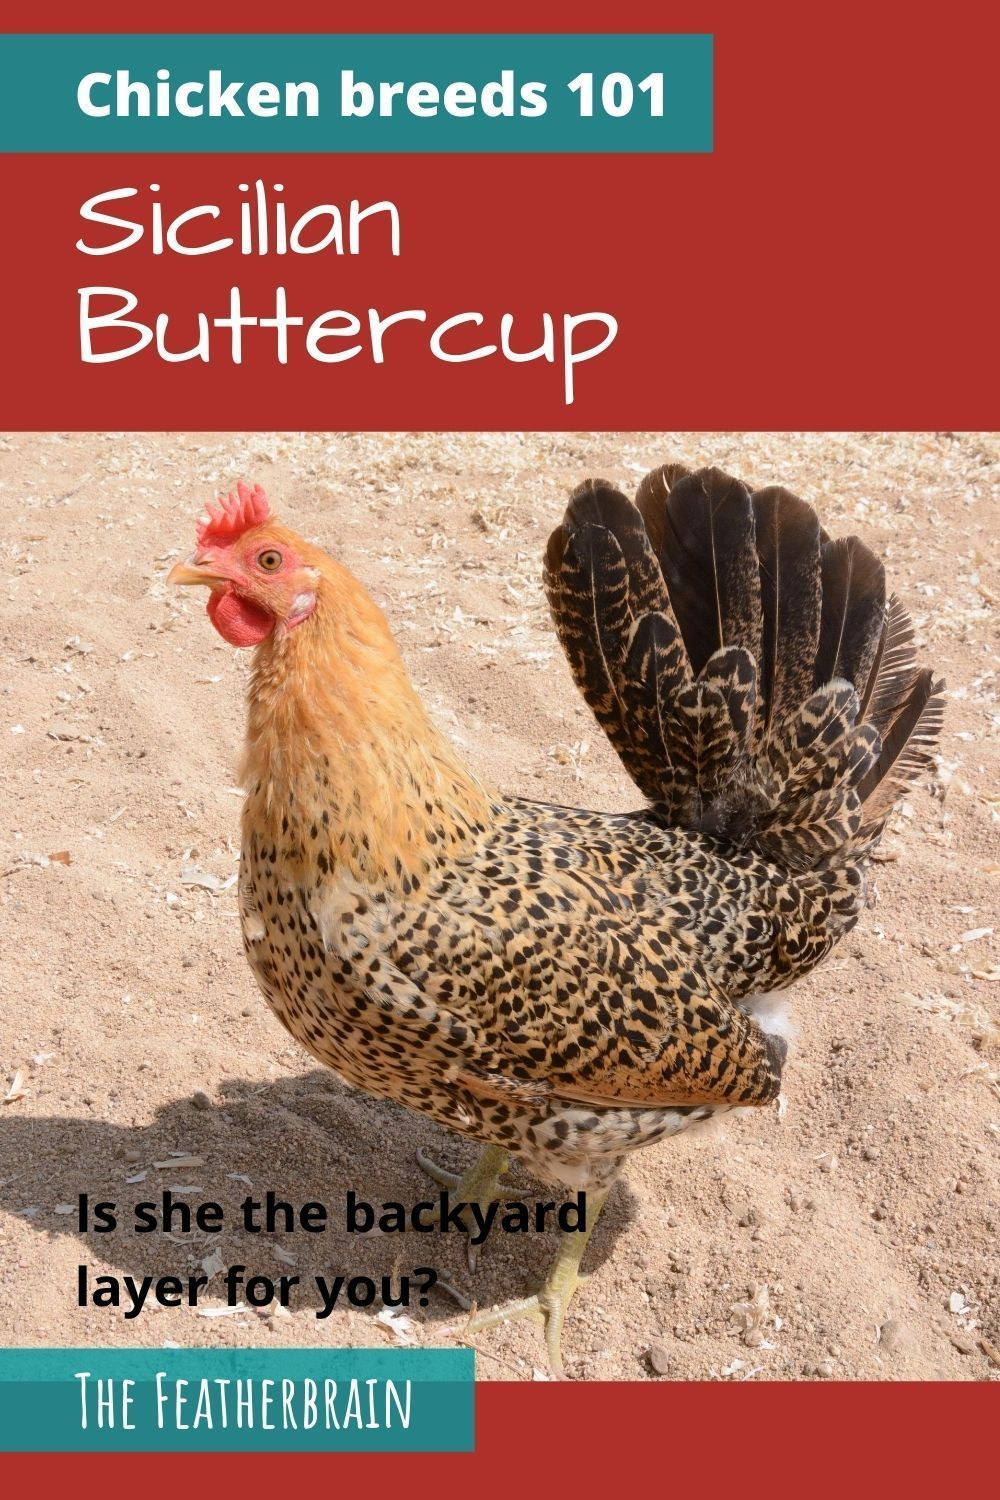 Sicilian Buttercup: Is she the backyard layer for